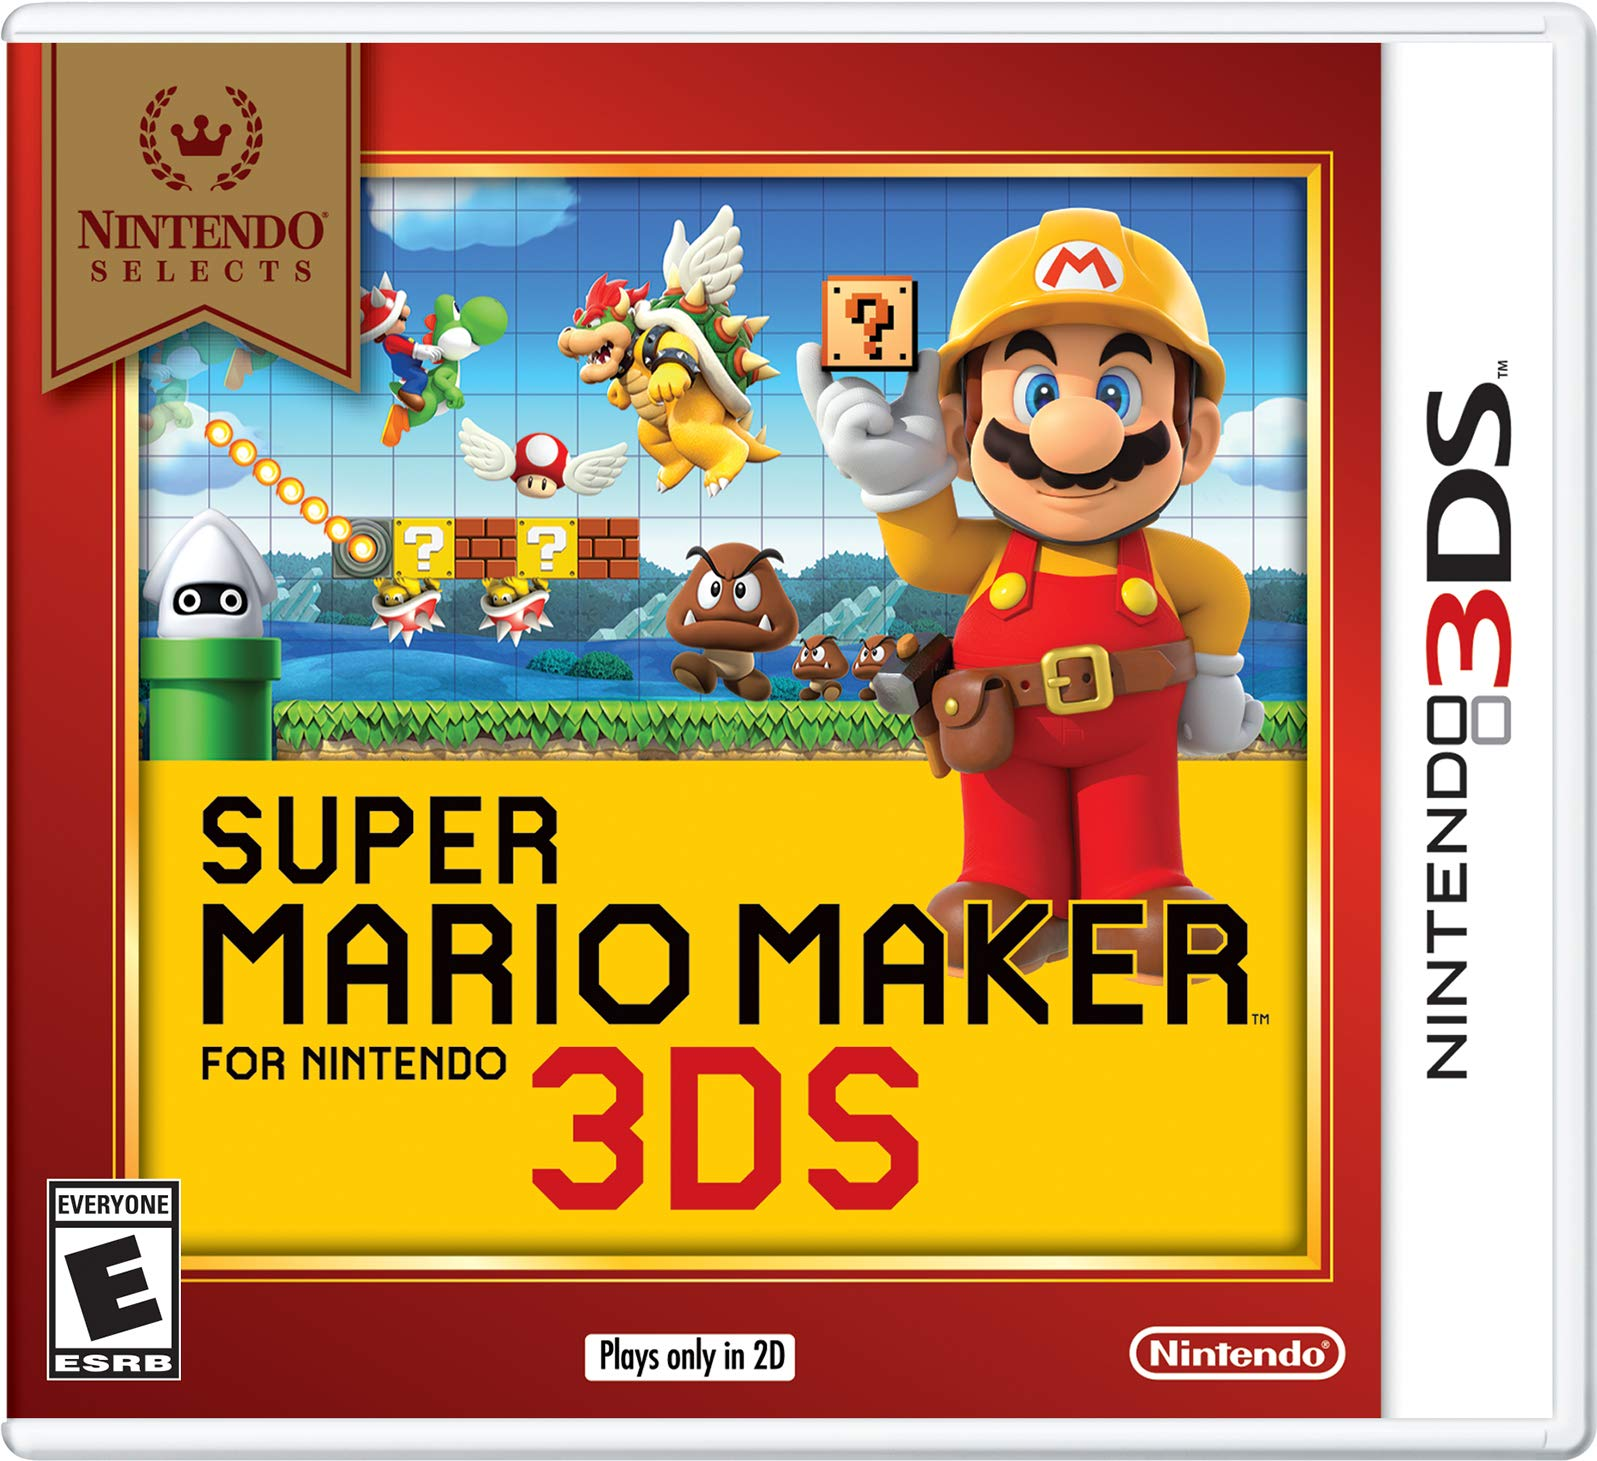 Nintendo Selects: Super Mario Maker for Nintendo 3DS – Nintendo 3DS